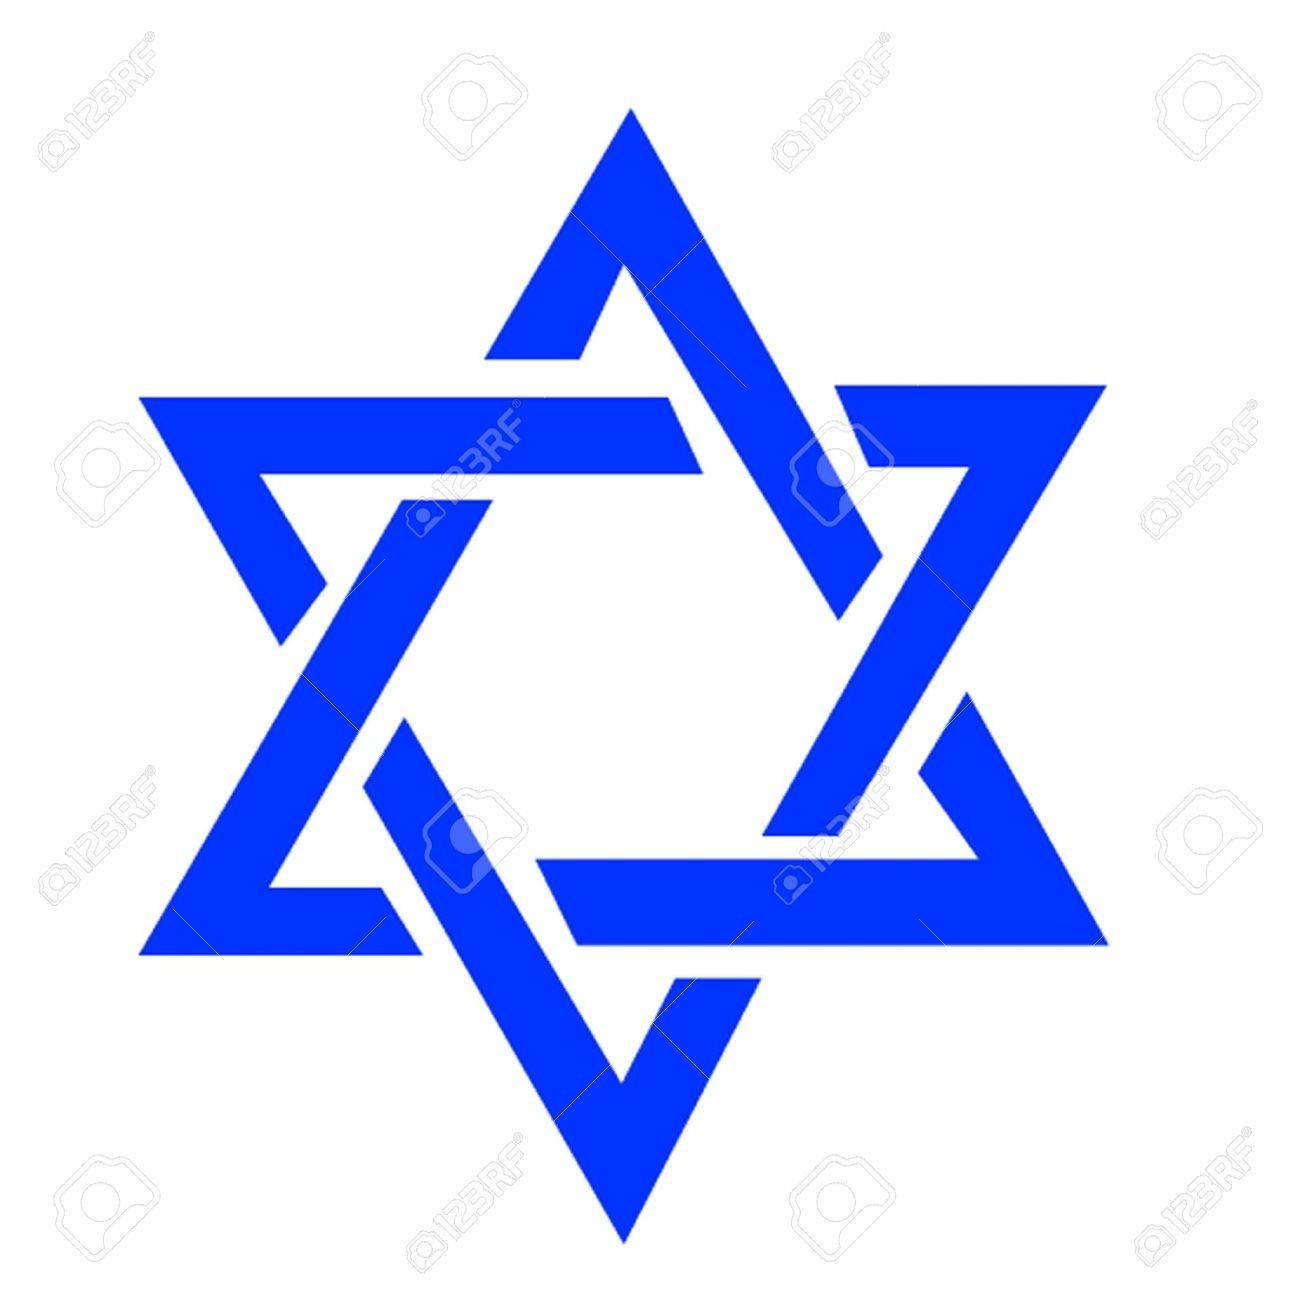 star of david royalty free cliparts vectors and stock illustration rh 123rf com Star of David Meaning star of david vector free